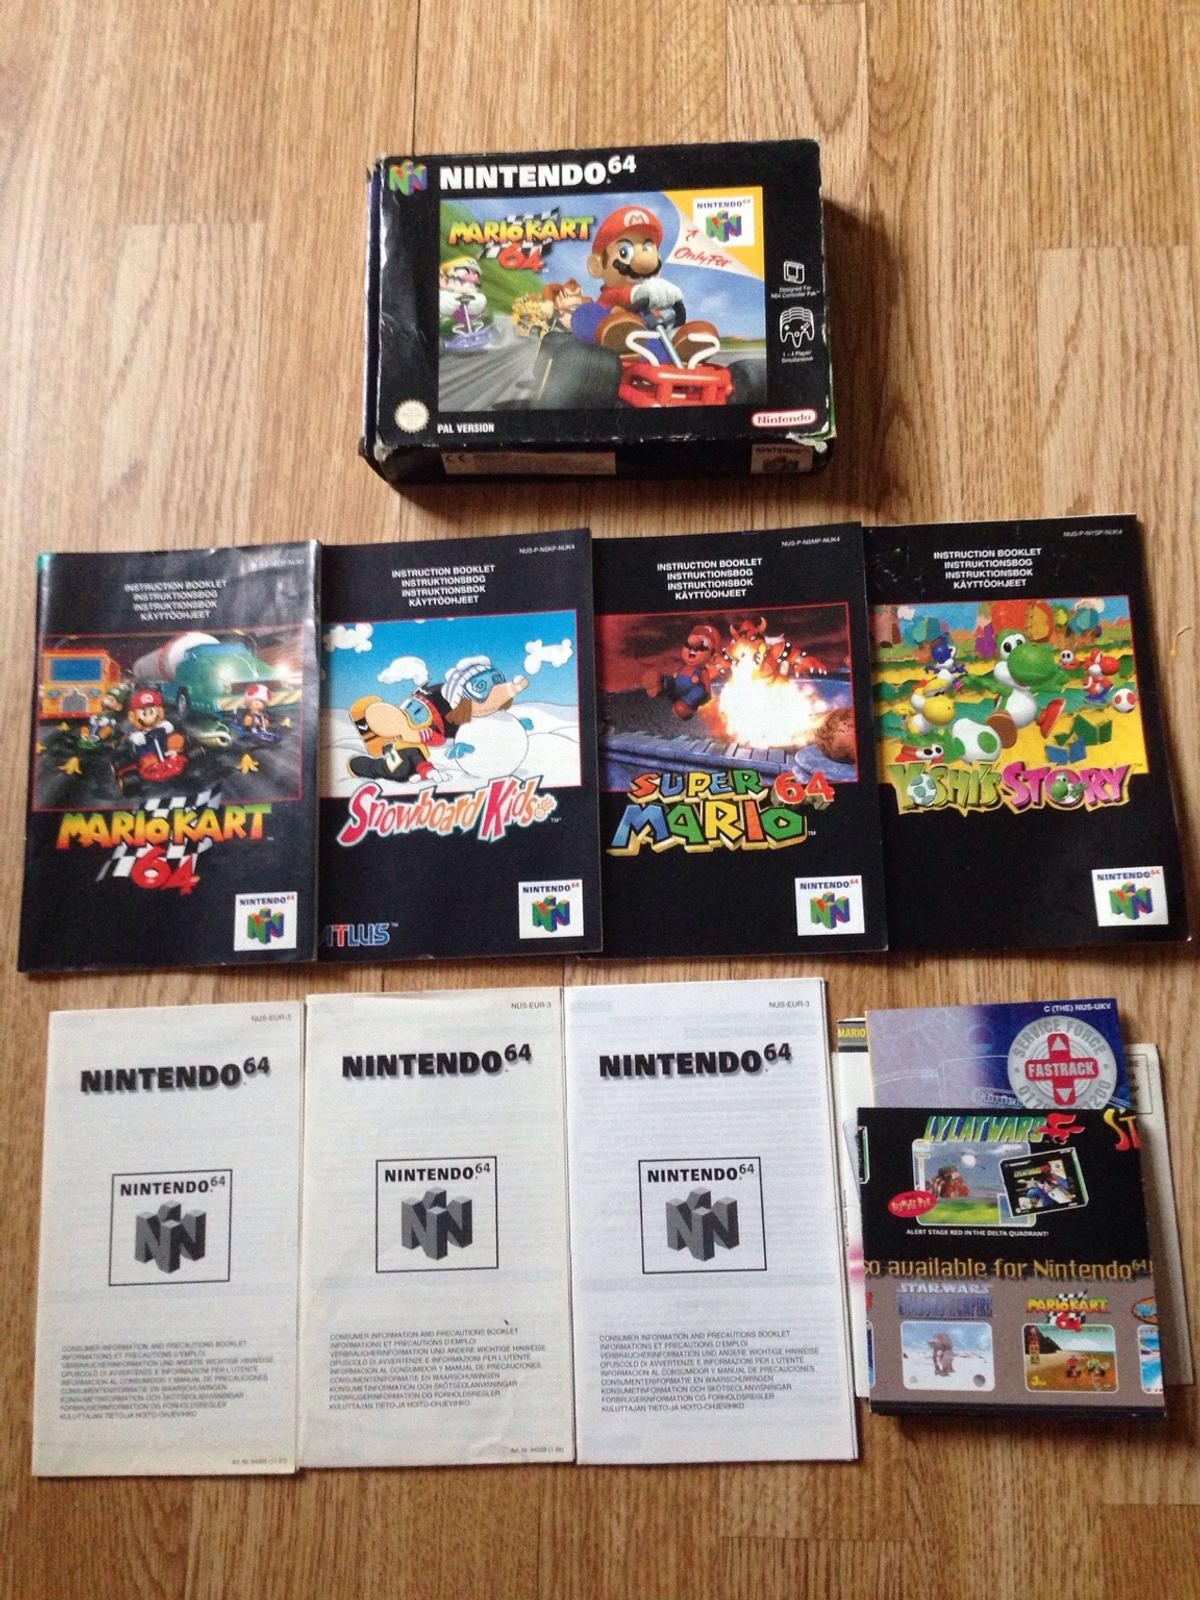 Nintendo 64 N64 Game Case And Manuals In Nw7 London For 10 00 For Sale Shpock